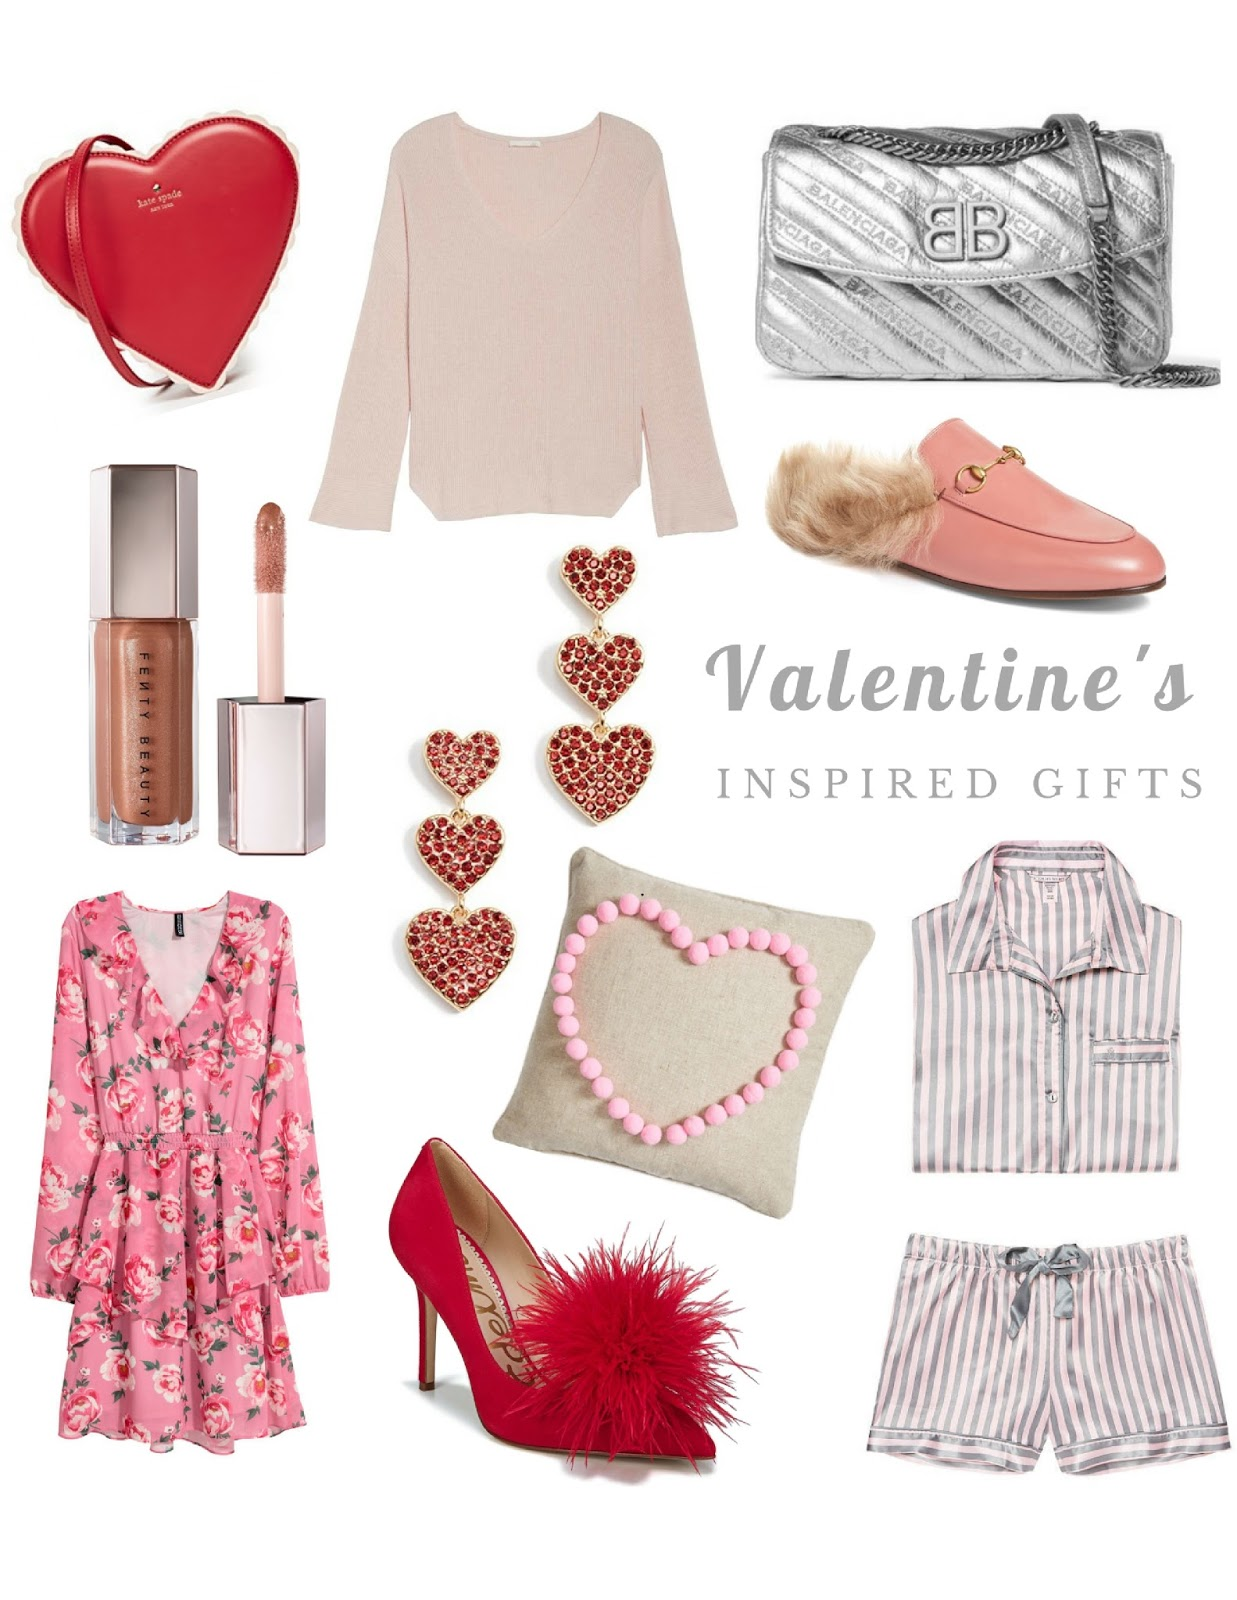 Gifts for valentine's day.